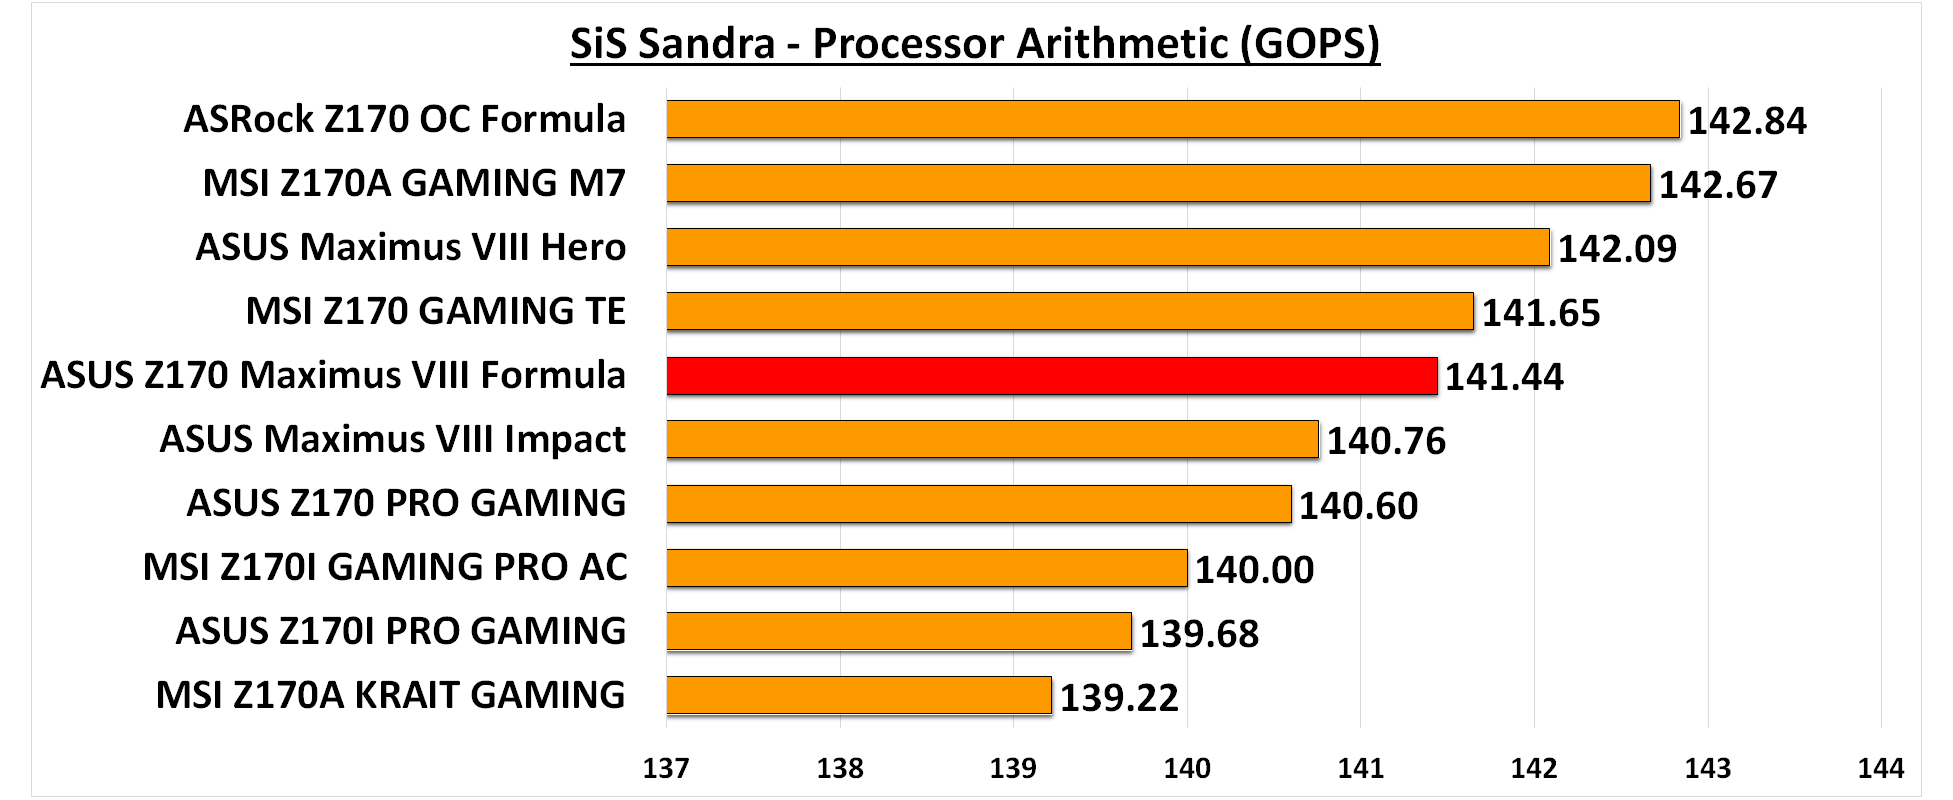 SiS Sandra Processor Arithmetic